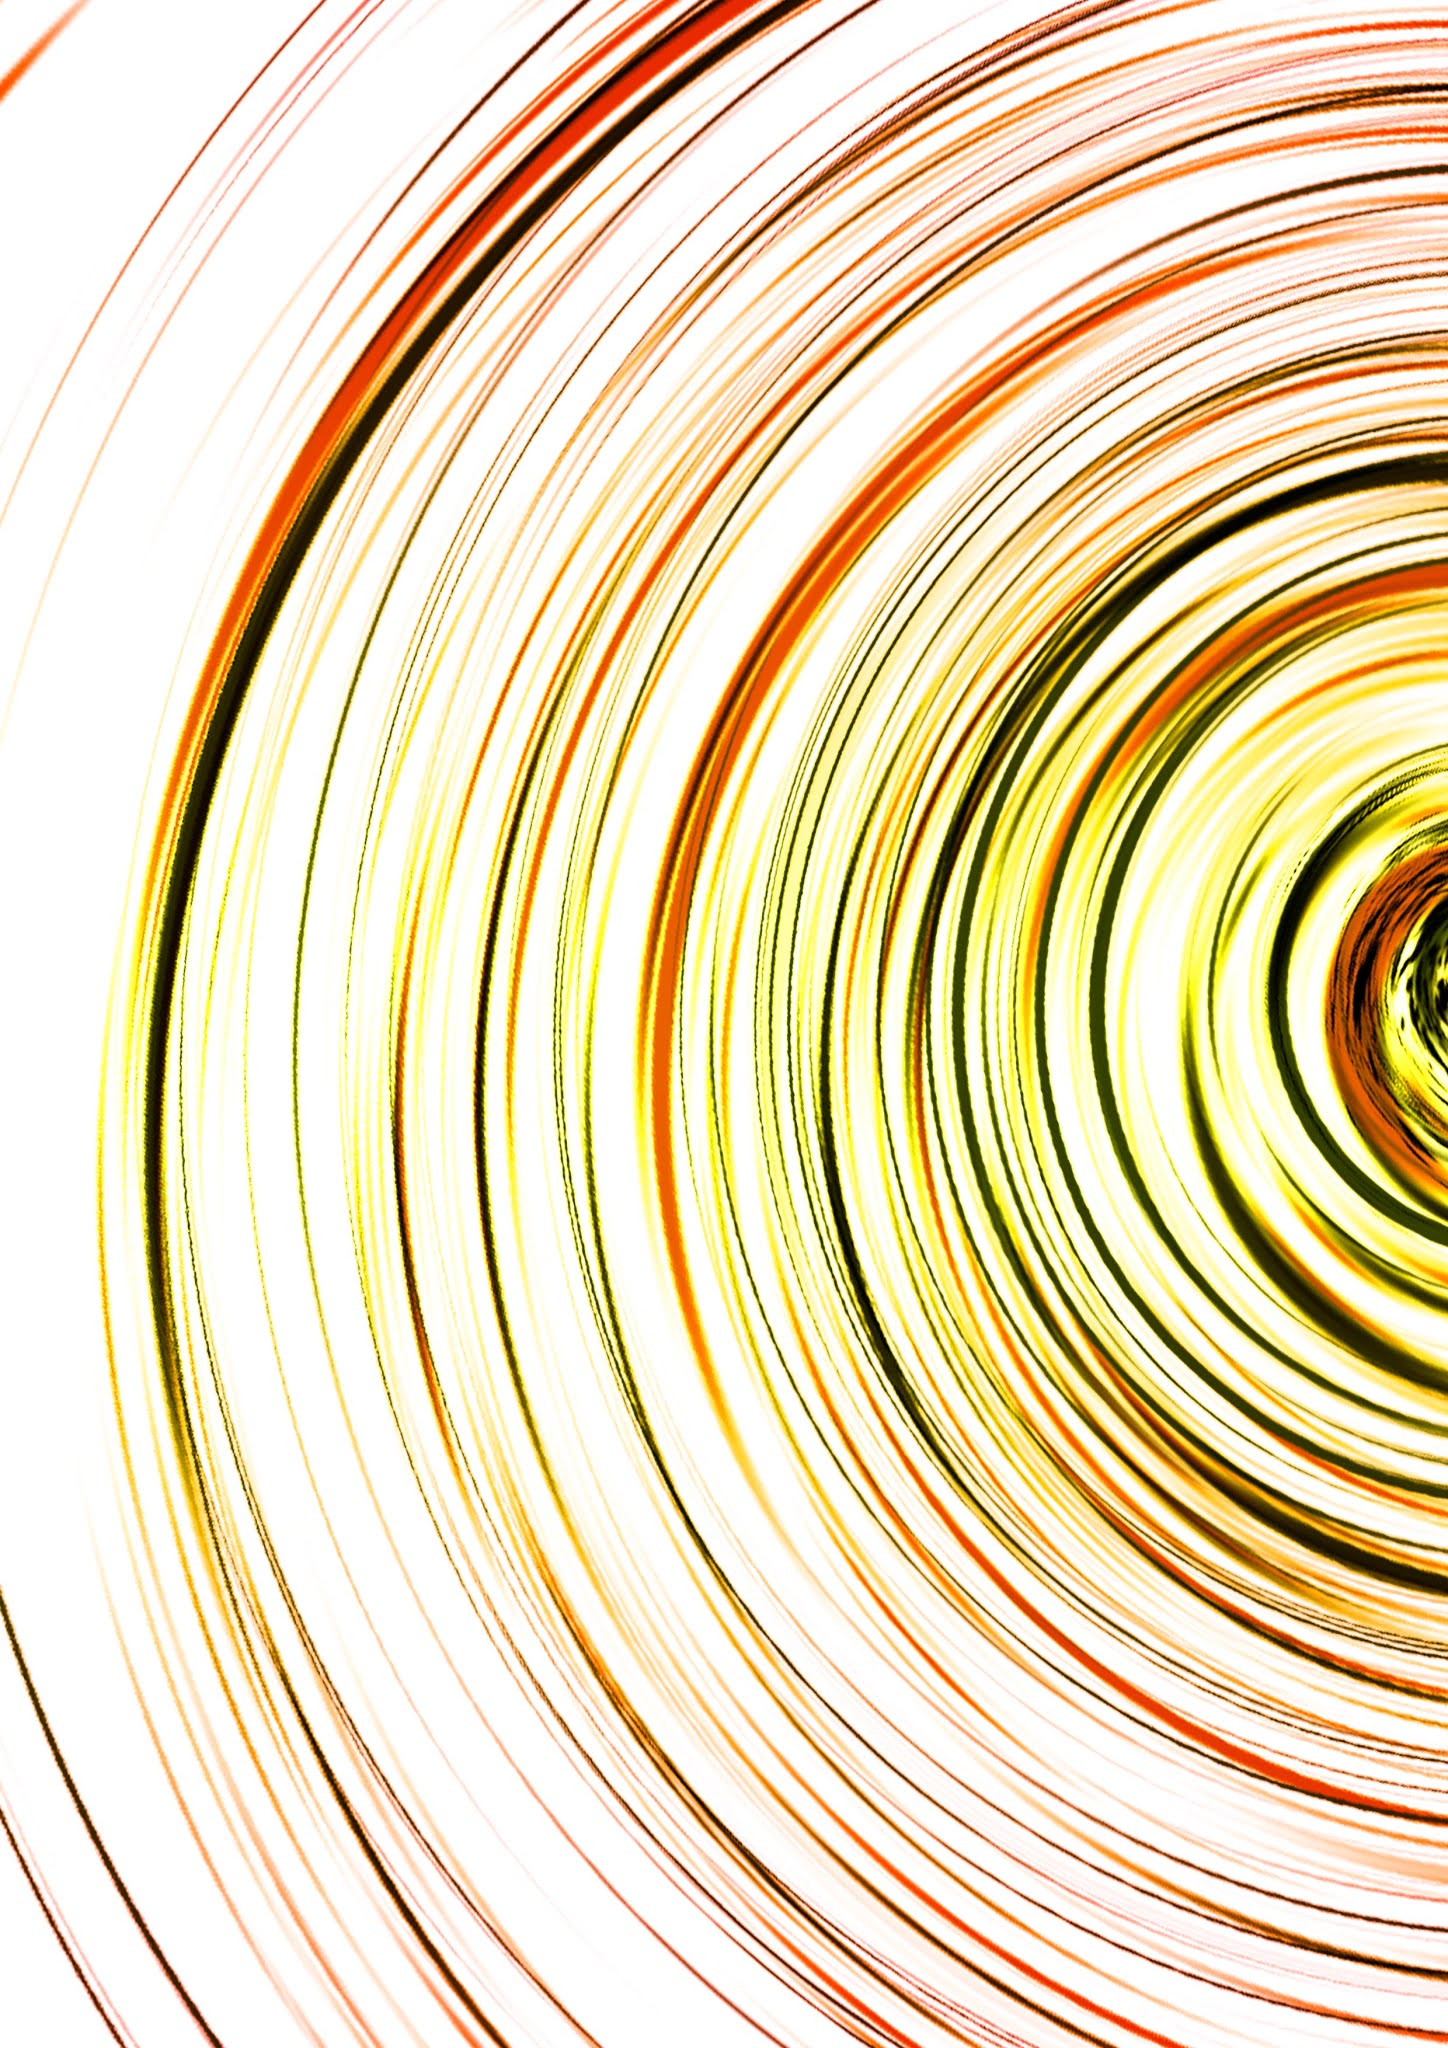 curves overlay gradient image